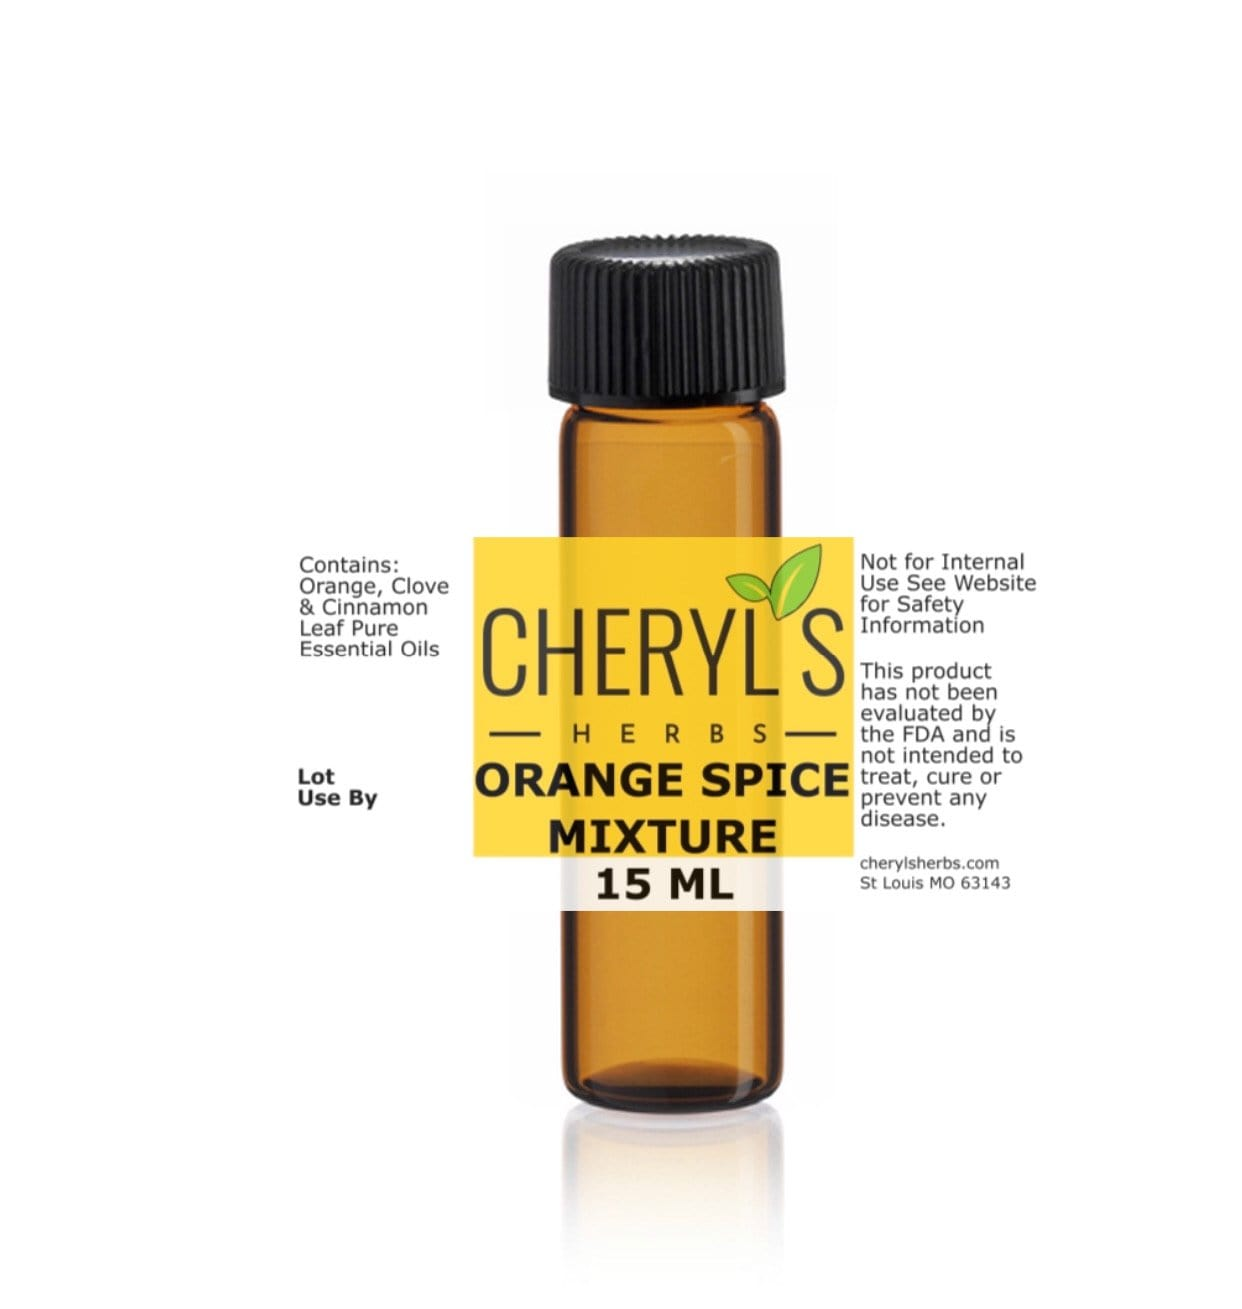 ORANGE SPICE MIXTURE - Cheryls Herbs